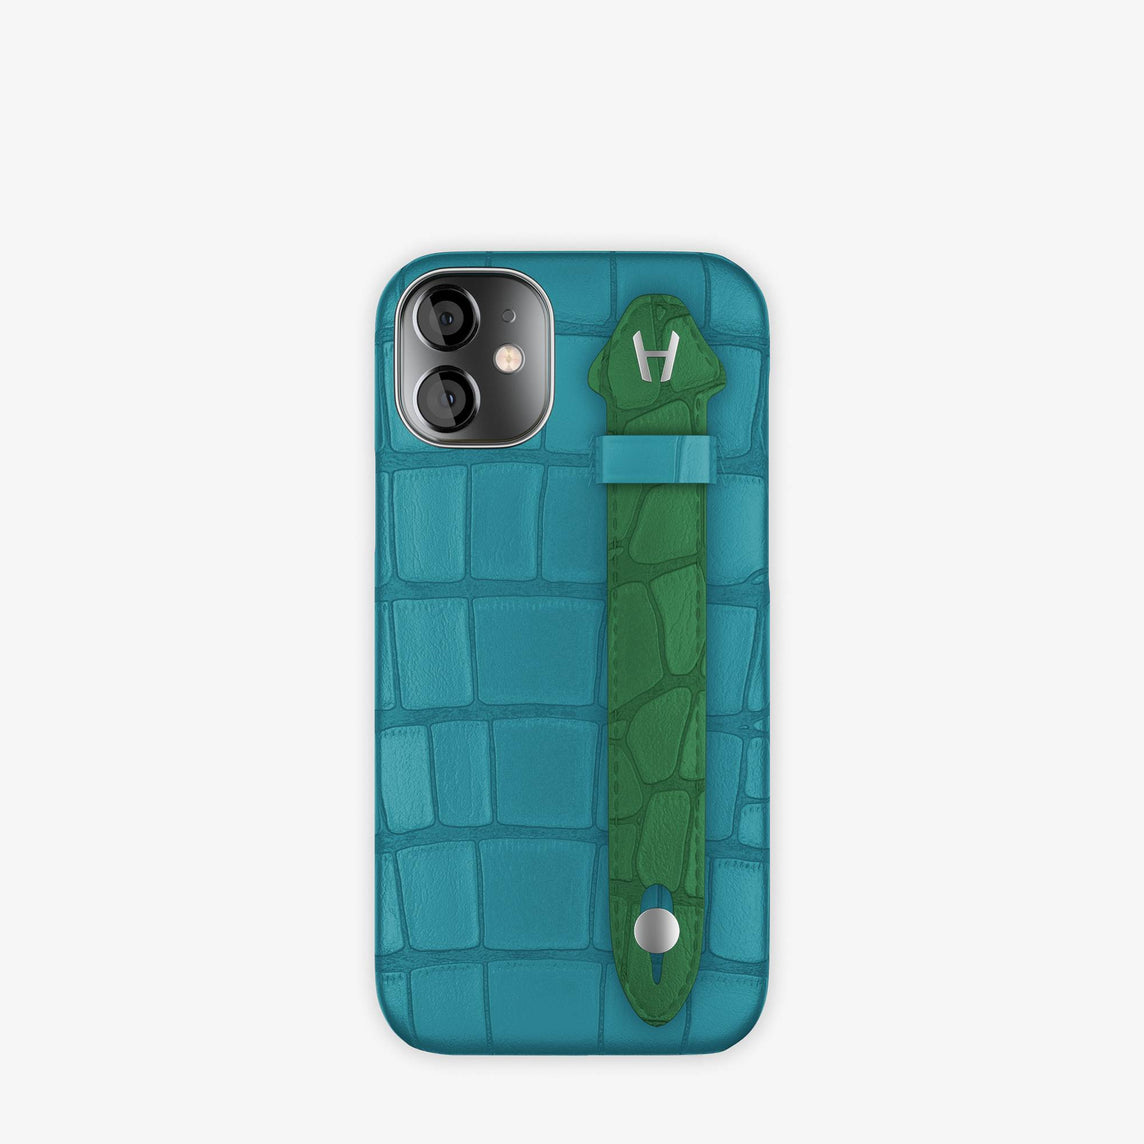 Alligator Side Finger Case iPhone 12 Mini | Blue Teal/Green Emerald -Stainless Steel